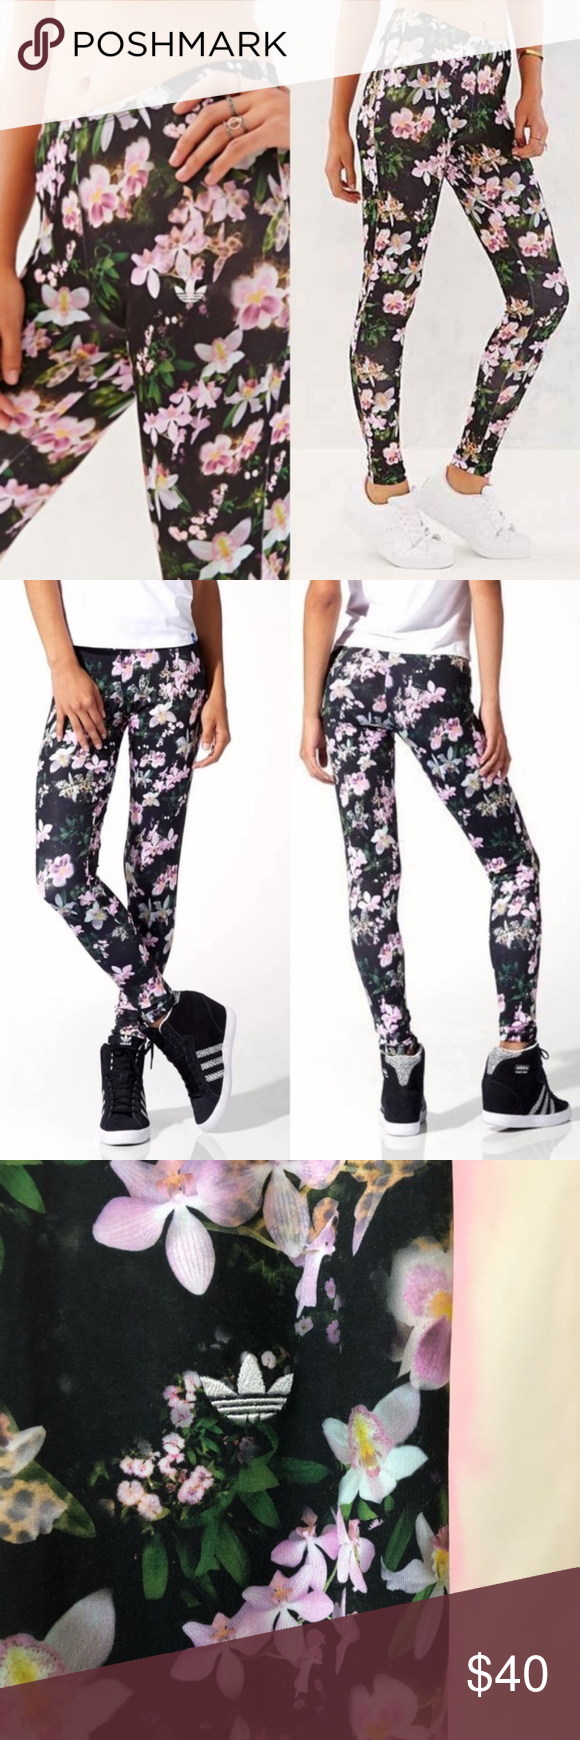 3603ec95da425 Adidas Originals Orchid Floral Full Legging Floral Stretch leggings  All-over orchids print Elastic waistband Lightweight for comfort FIT:  Stretch fit ...